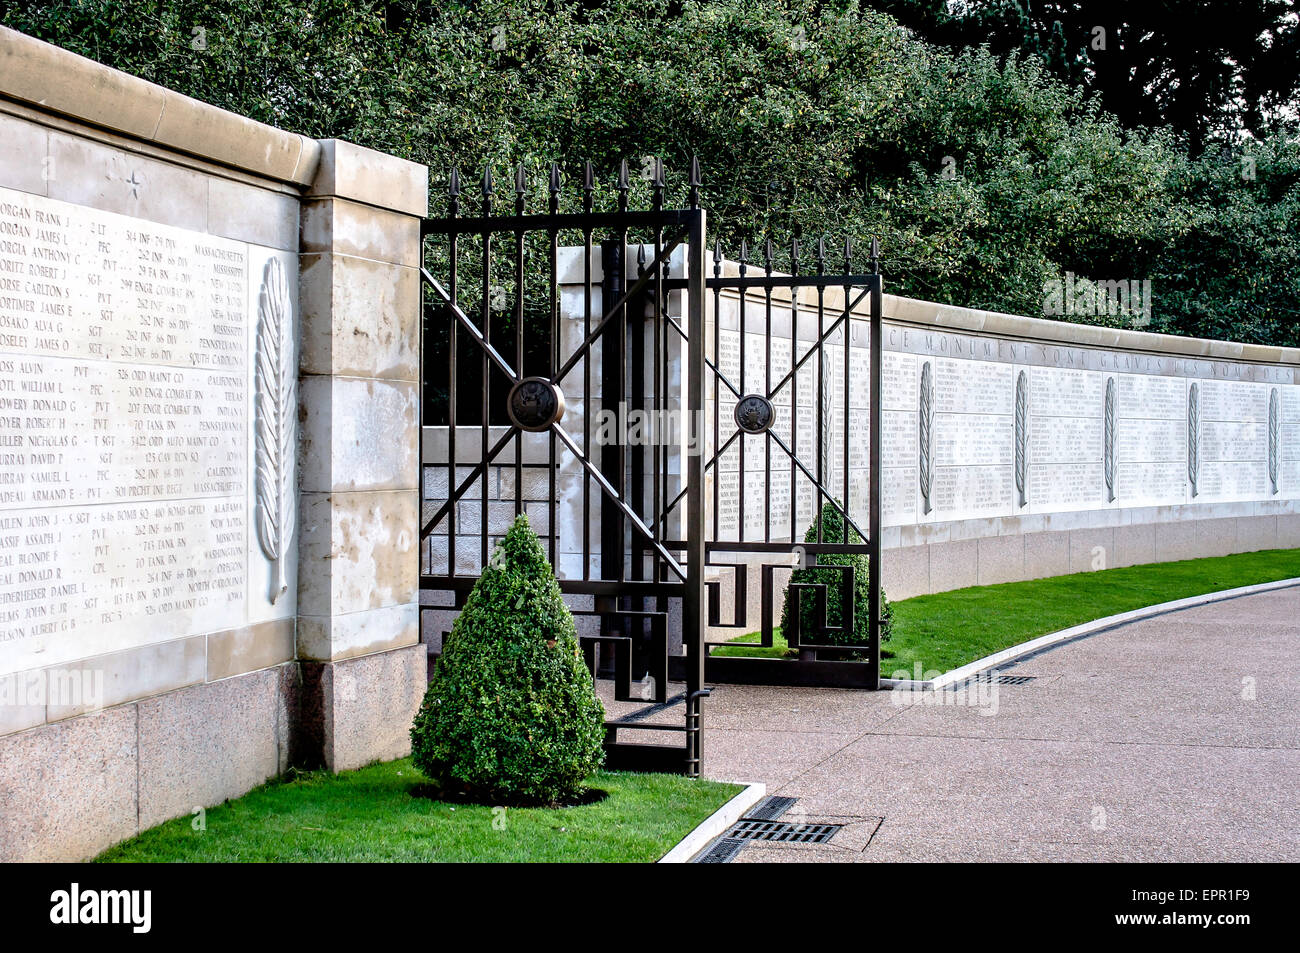 Wall in the peaceful but poignant gardens of American Cemetery, Omaha Beach, Normandy, France inscribed with names - Stock Image